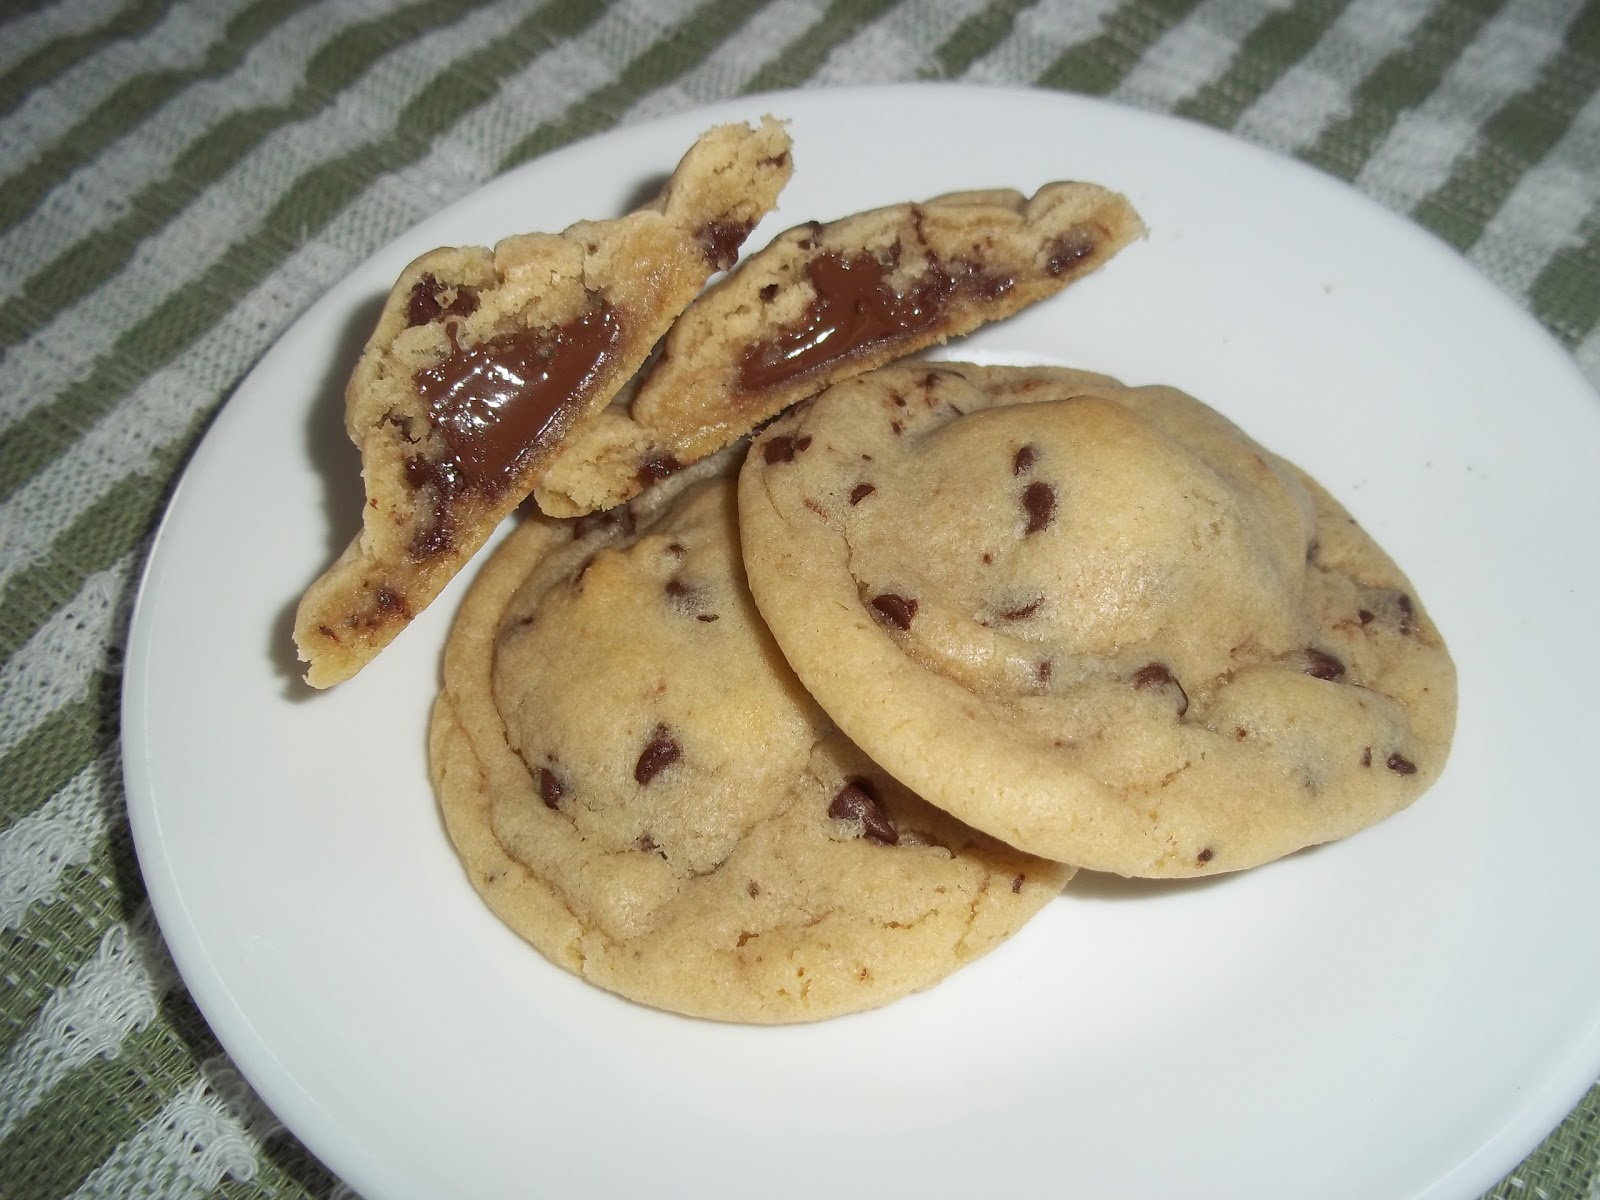 The Daily Smash: Hershey Kiss Stuffed Chocolate Chip Cookies